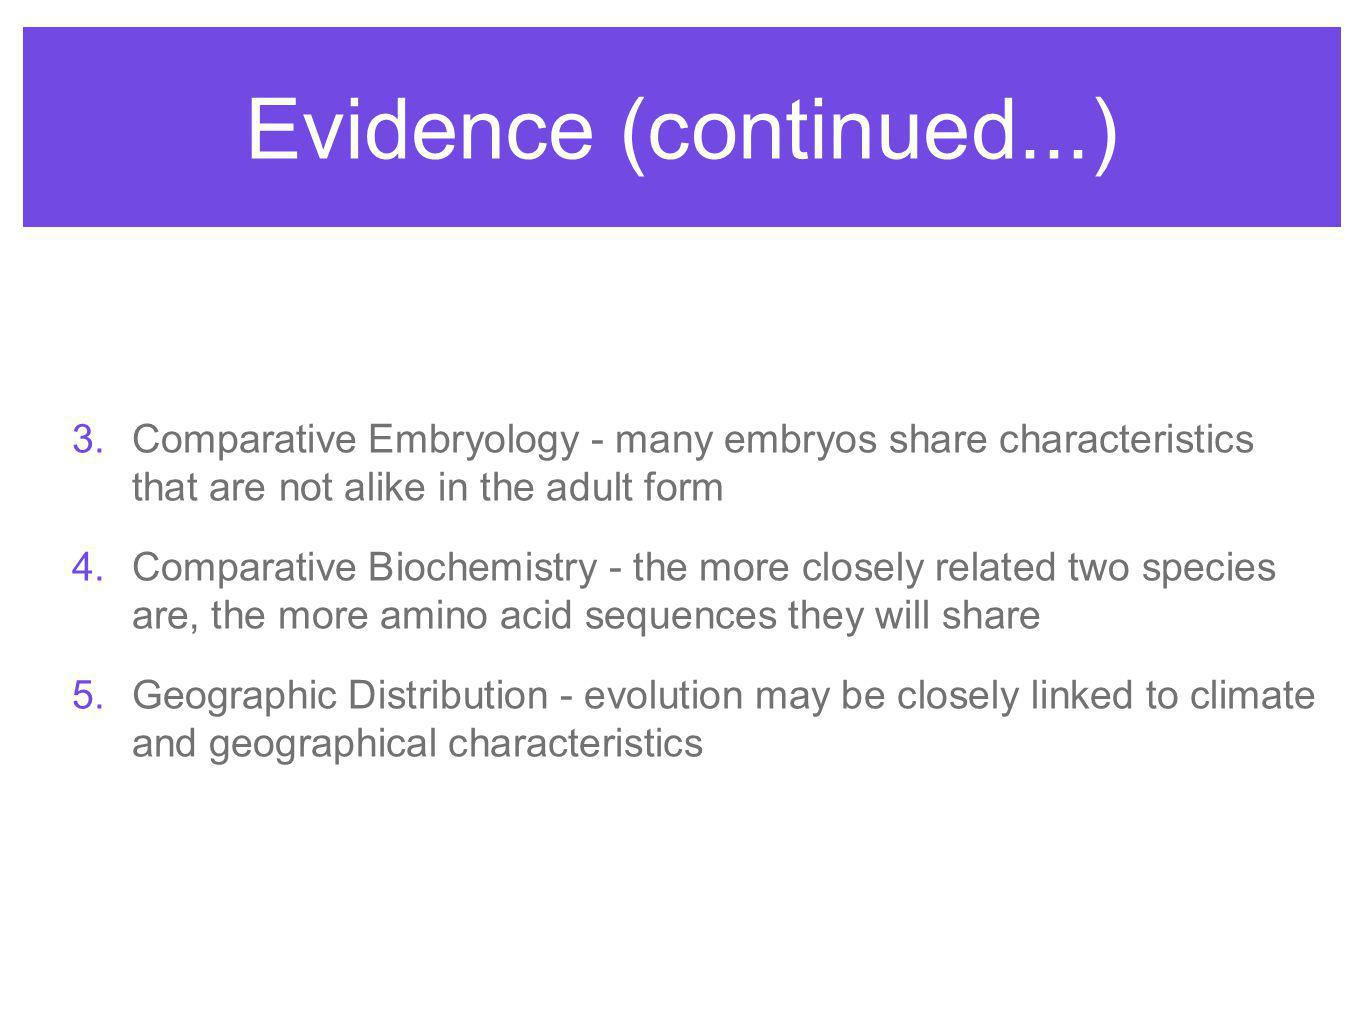 Evidence (continued...) Comparative Embryology - many embryos share characteristics that are not alike in the adult form.